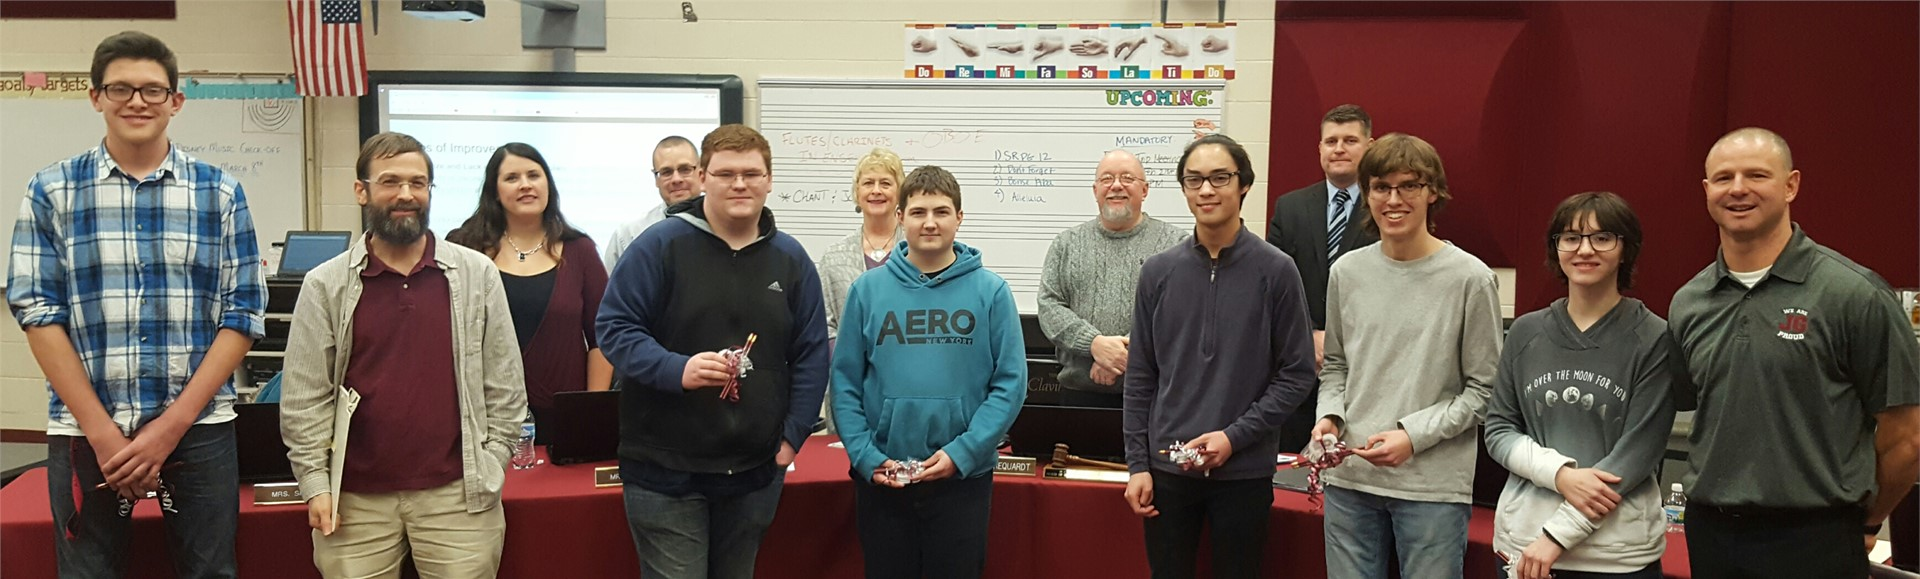 Robotics students from JGHS along with teacher Mr. Joy, were recognized and gave a demonstration at the February Board of Education meeting